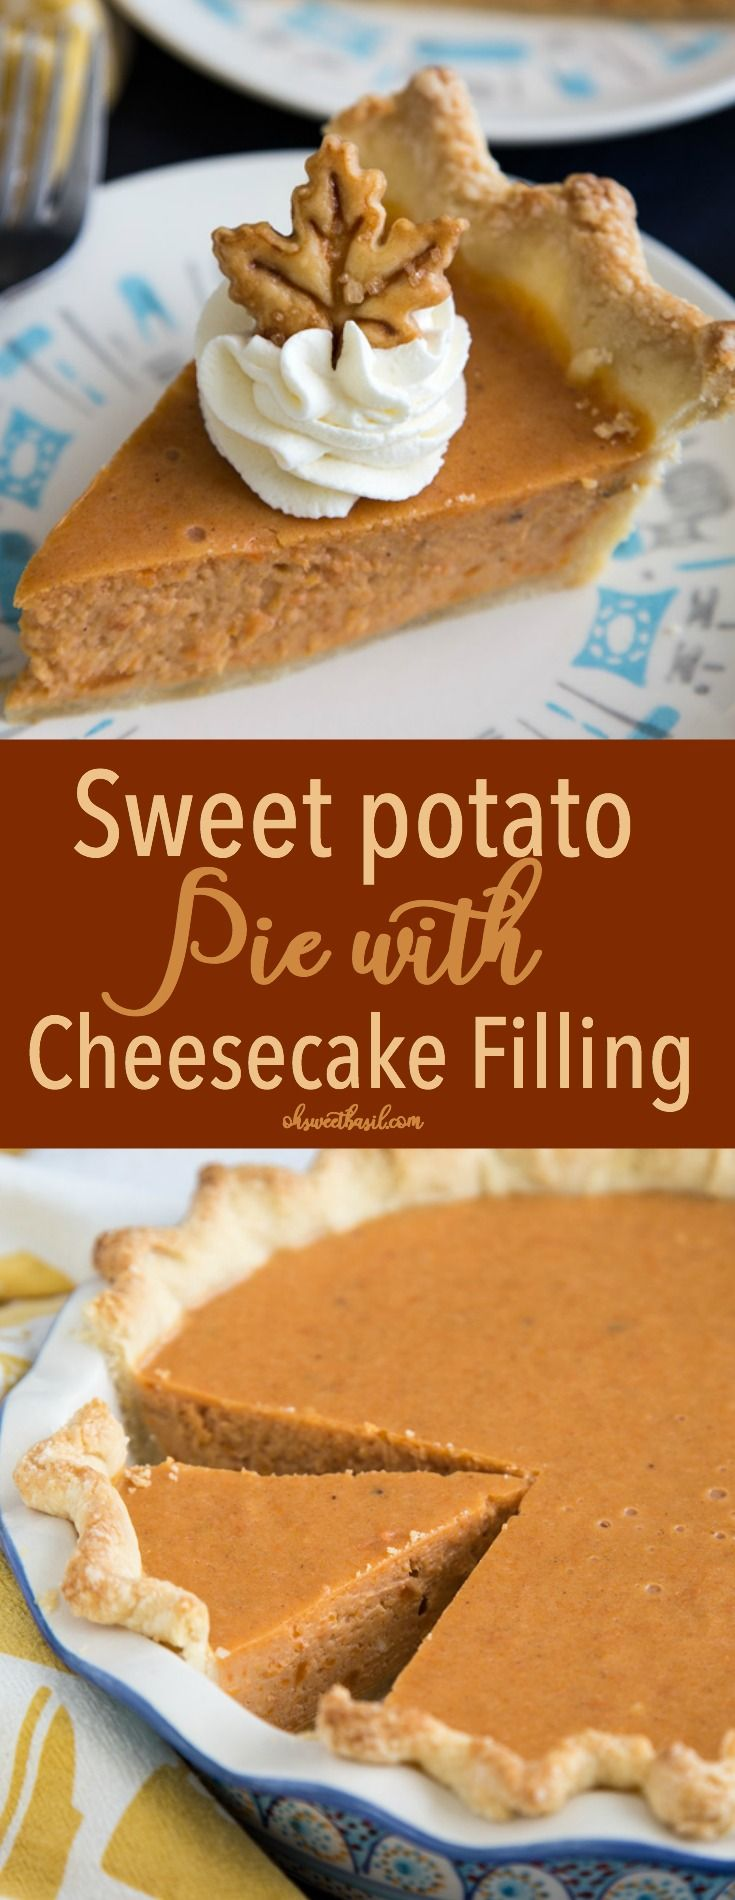 Sweet Potato Pie with Cheesecake Filling - Oh Sweet Basil